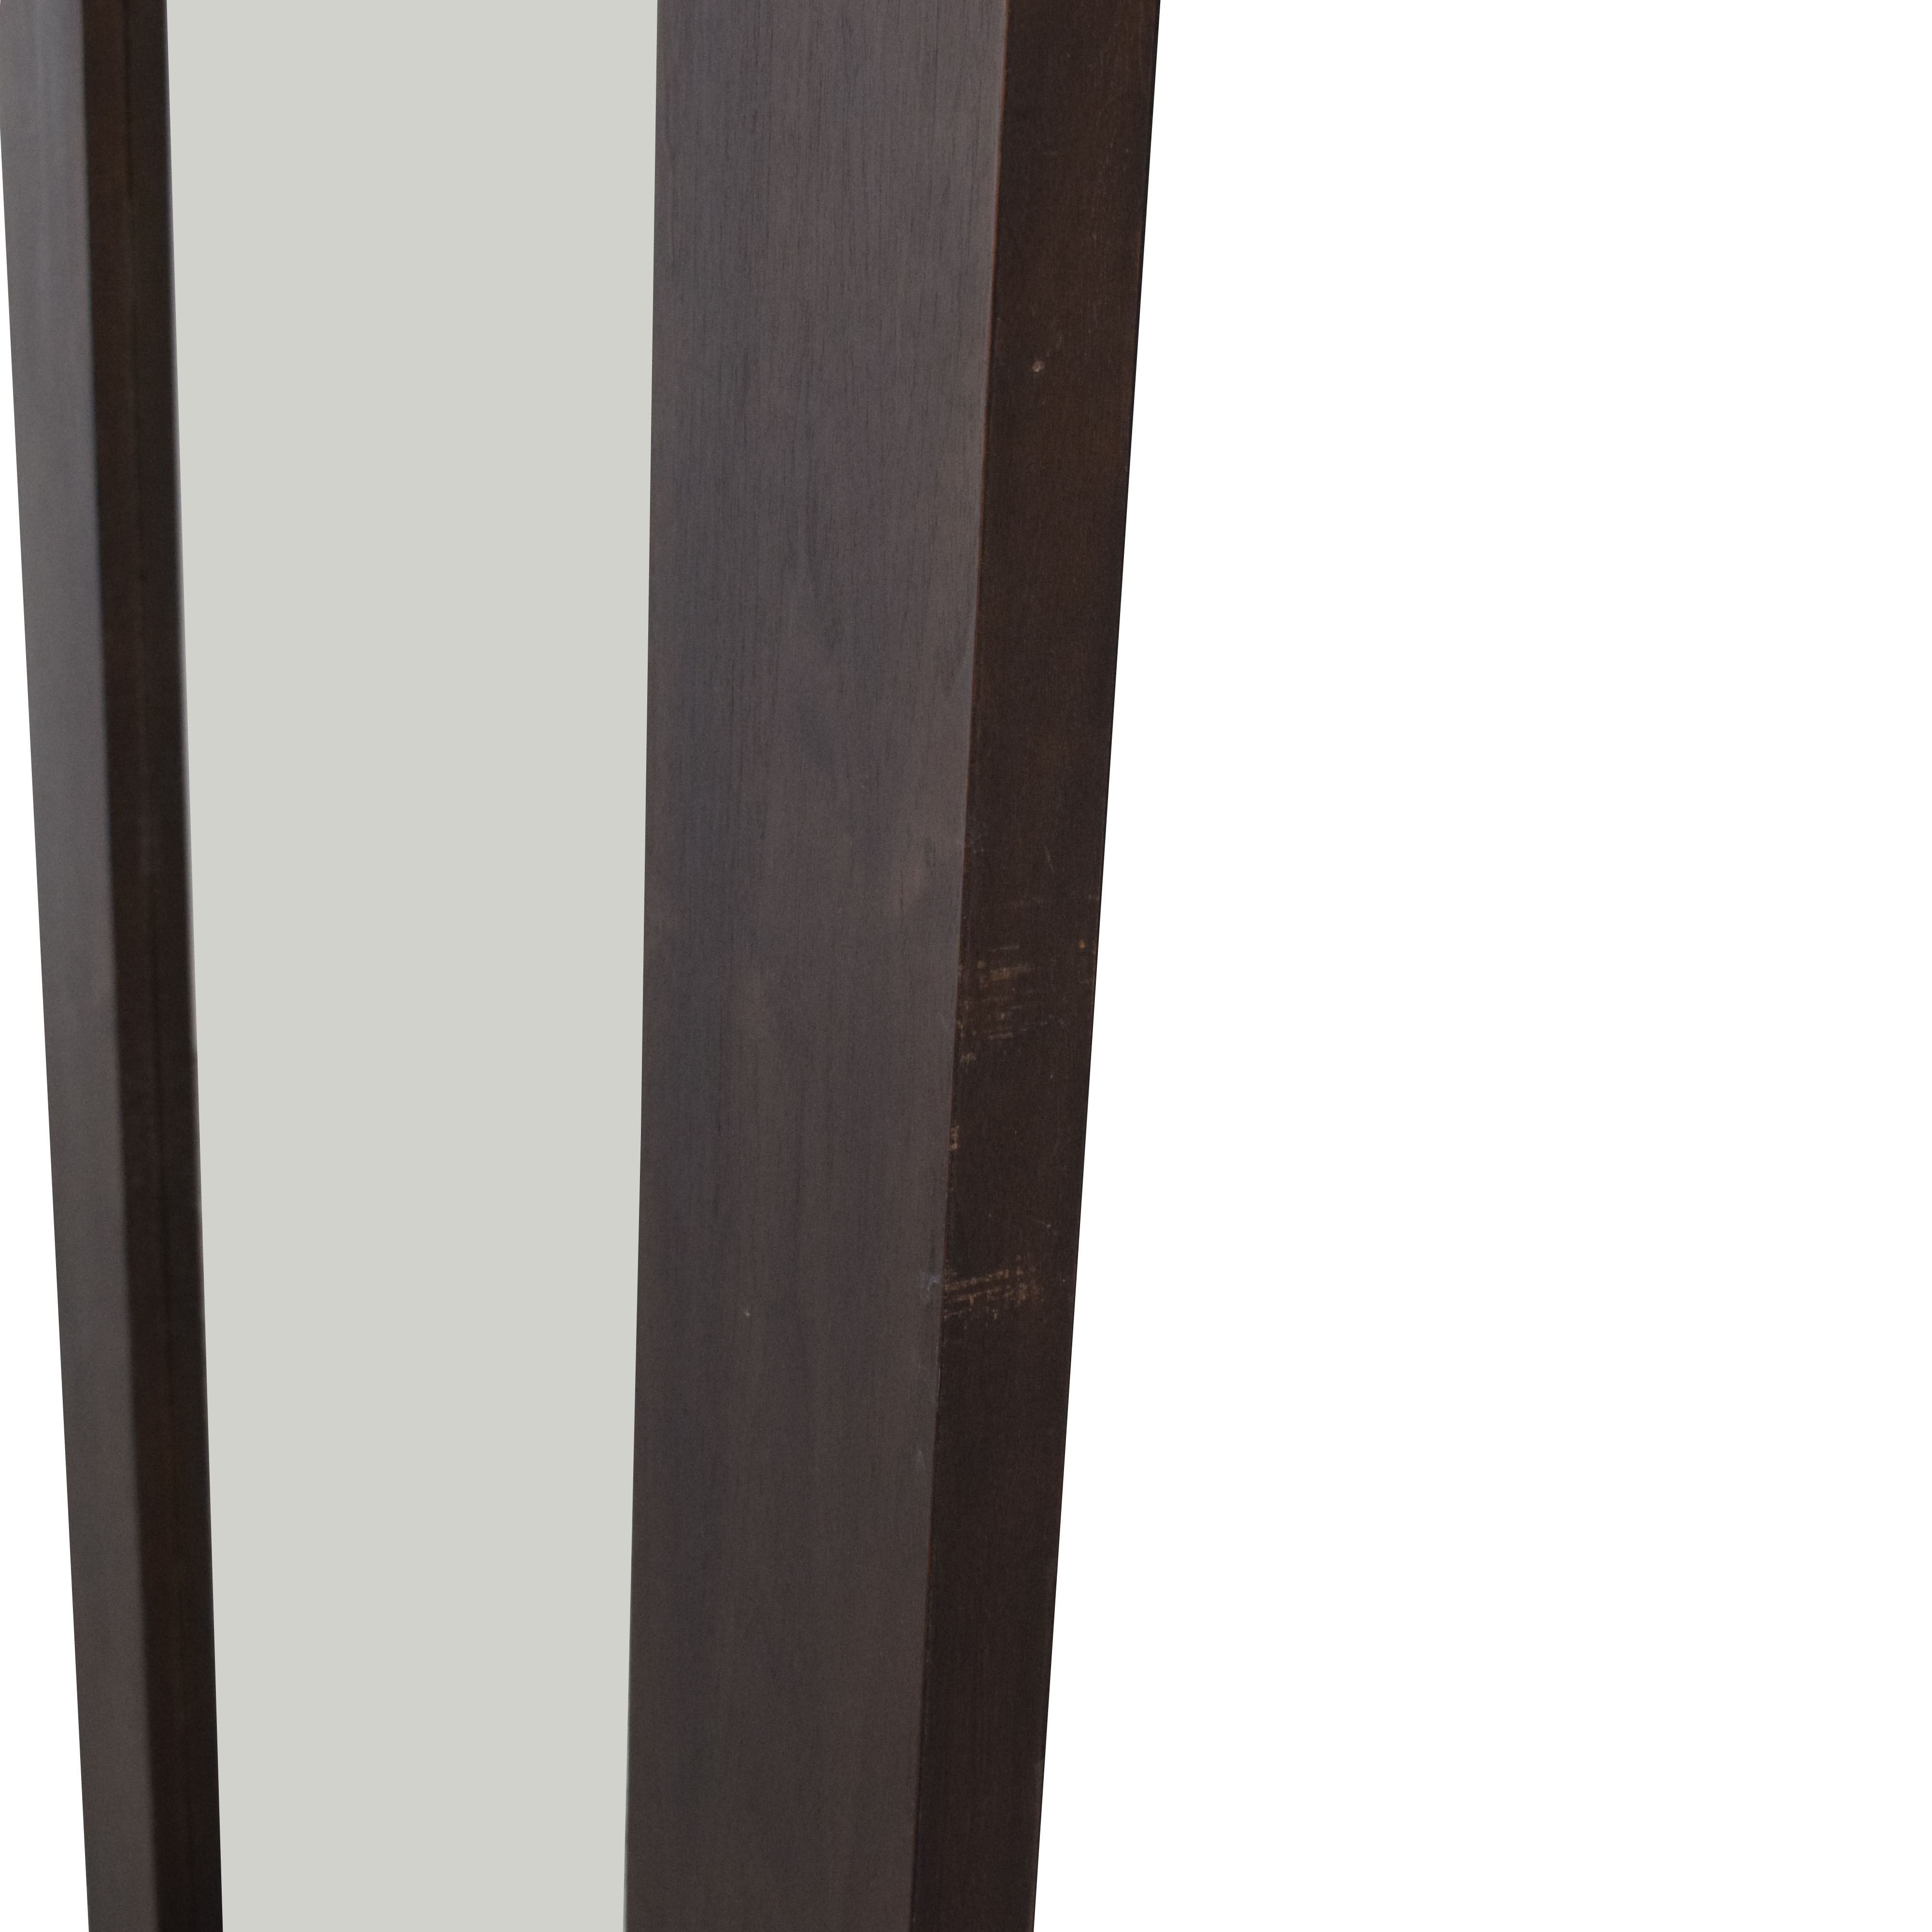 Armani Casa Armani Casa Solid Wood Mirror on sale